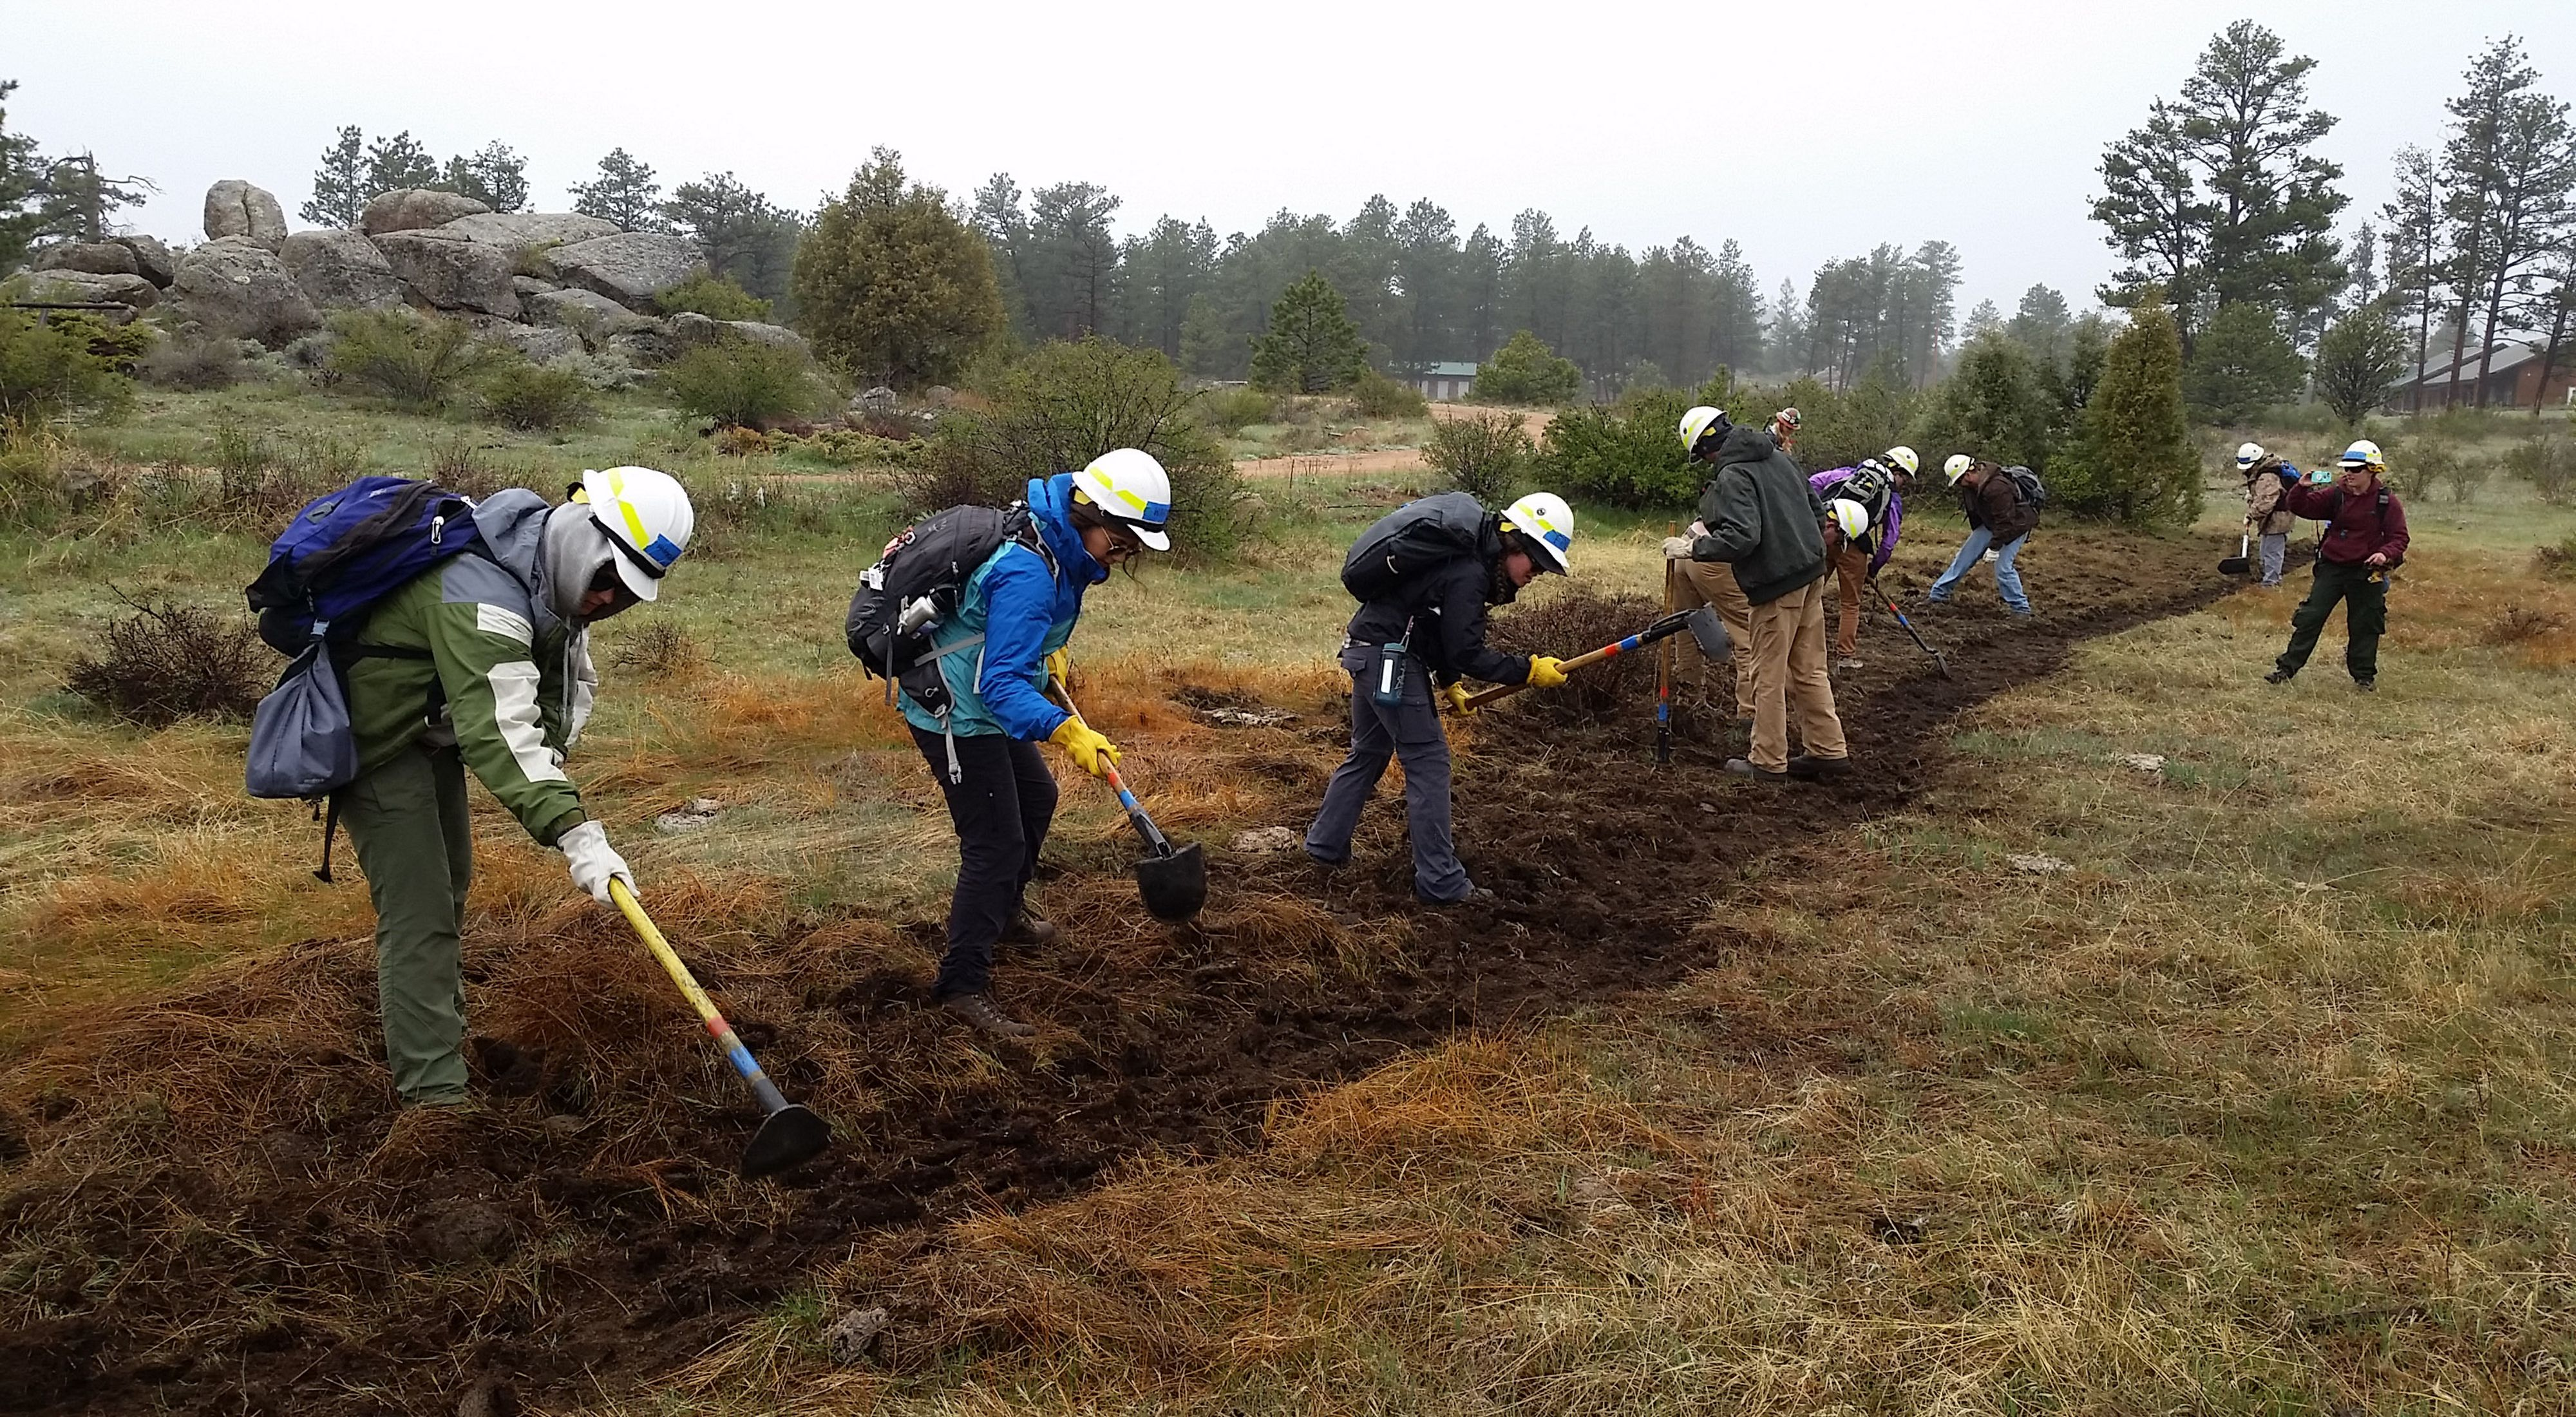 Colorado staff are working to build a qualified volunteer staff who can assist the TNC in forest restoration and fire projects.